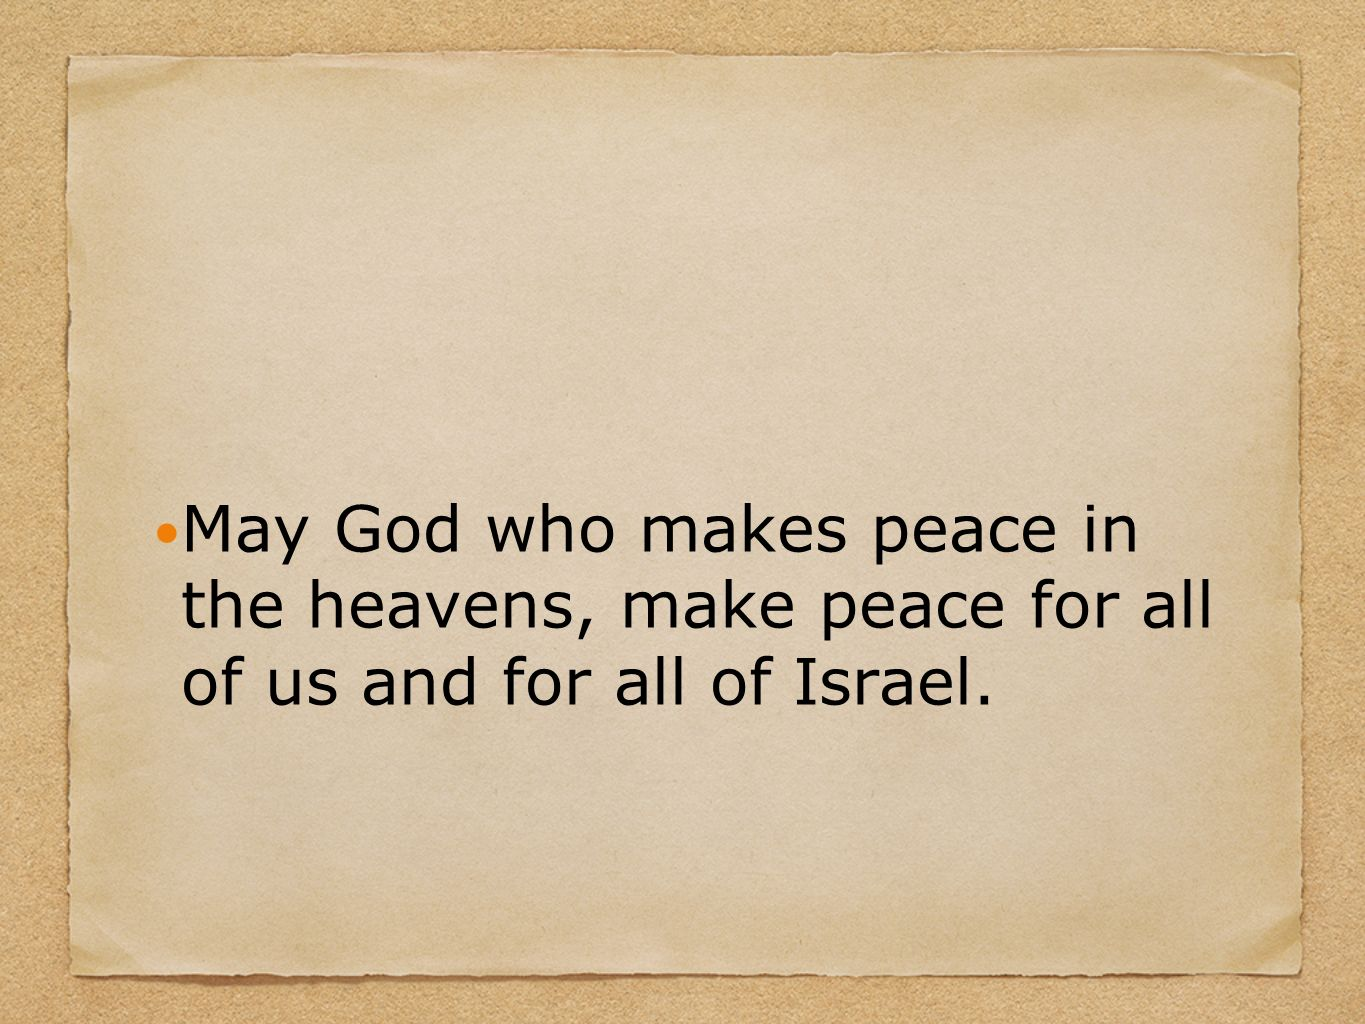 May God who makes peace in the heavens, make peace for all of us and for all of Israel.